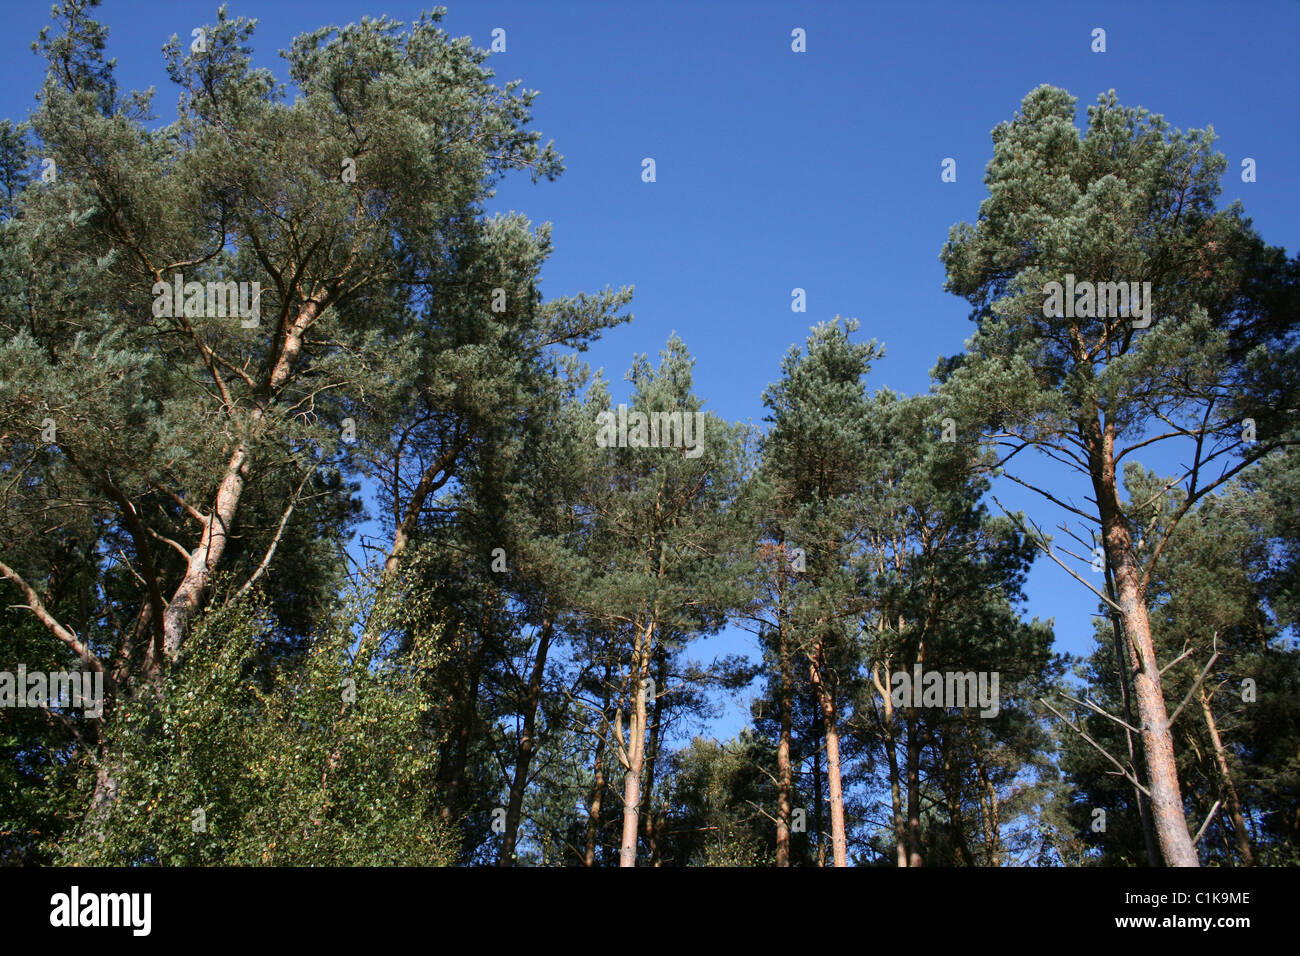 Pine Trees At Willingham Woods, Lincolnshire, UK - Stock Image